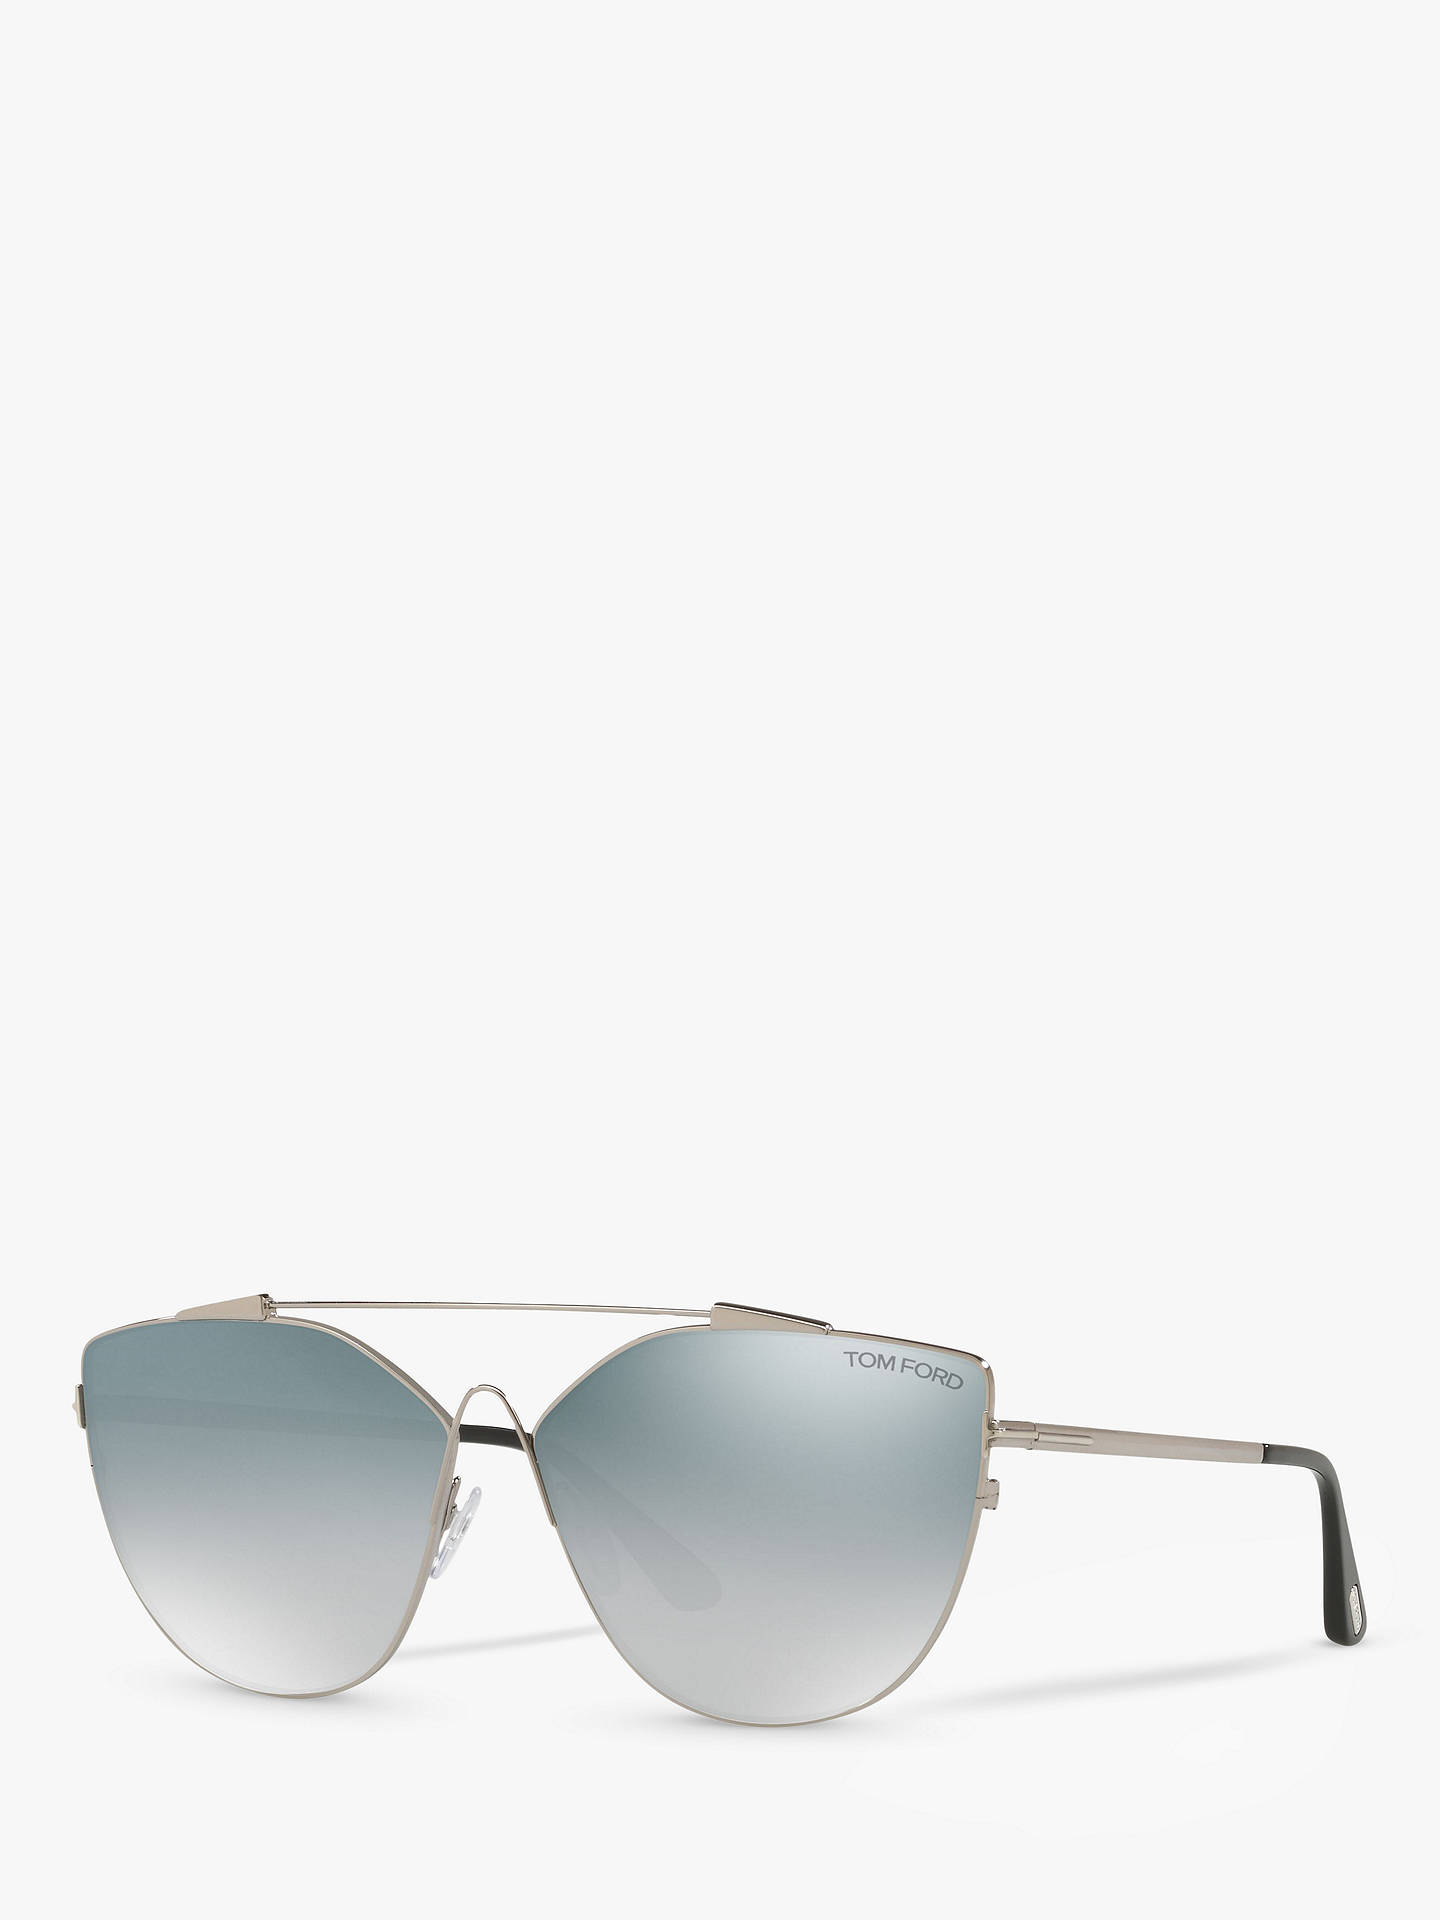 Buy TOM FORD FT0563 Jacquelyn Cat's Eye Sunglasses, Silver/Blue Gradient Online at johnlewis.com